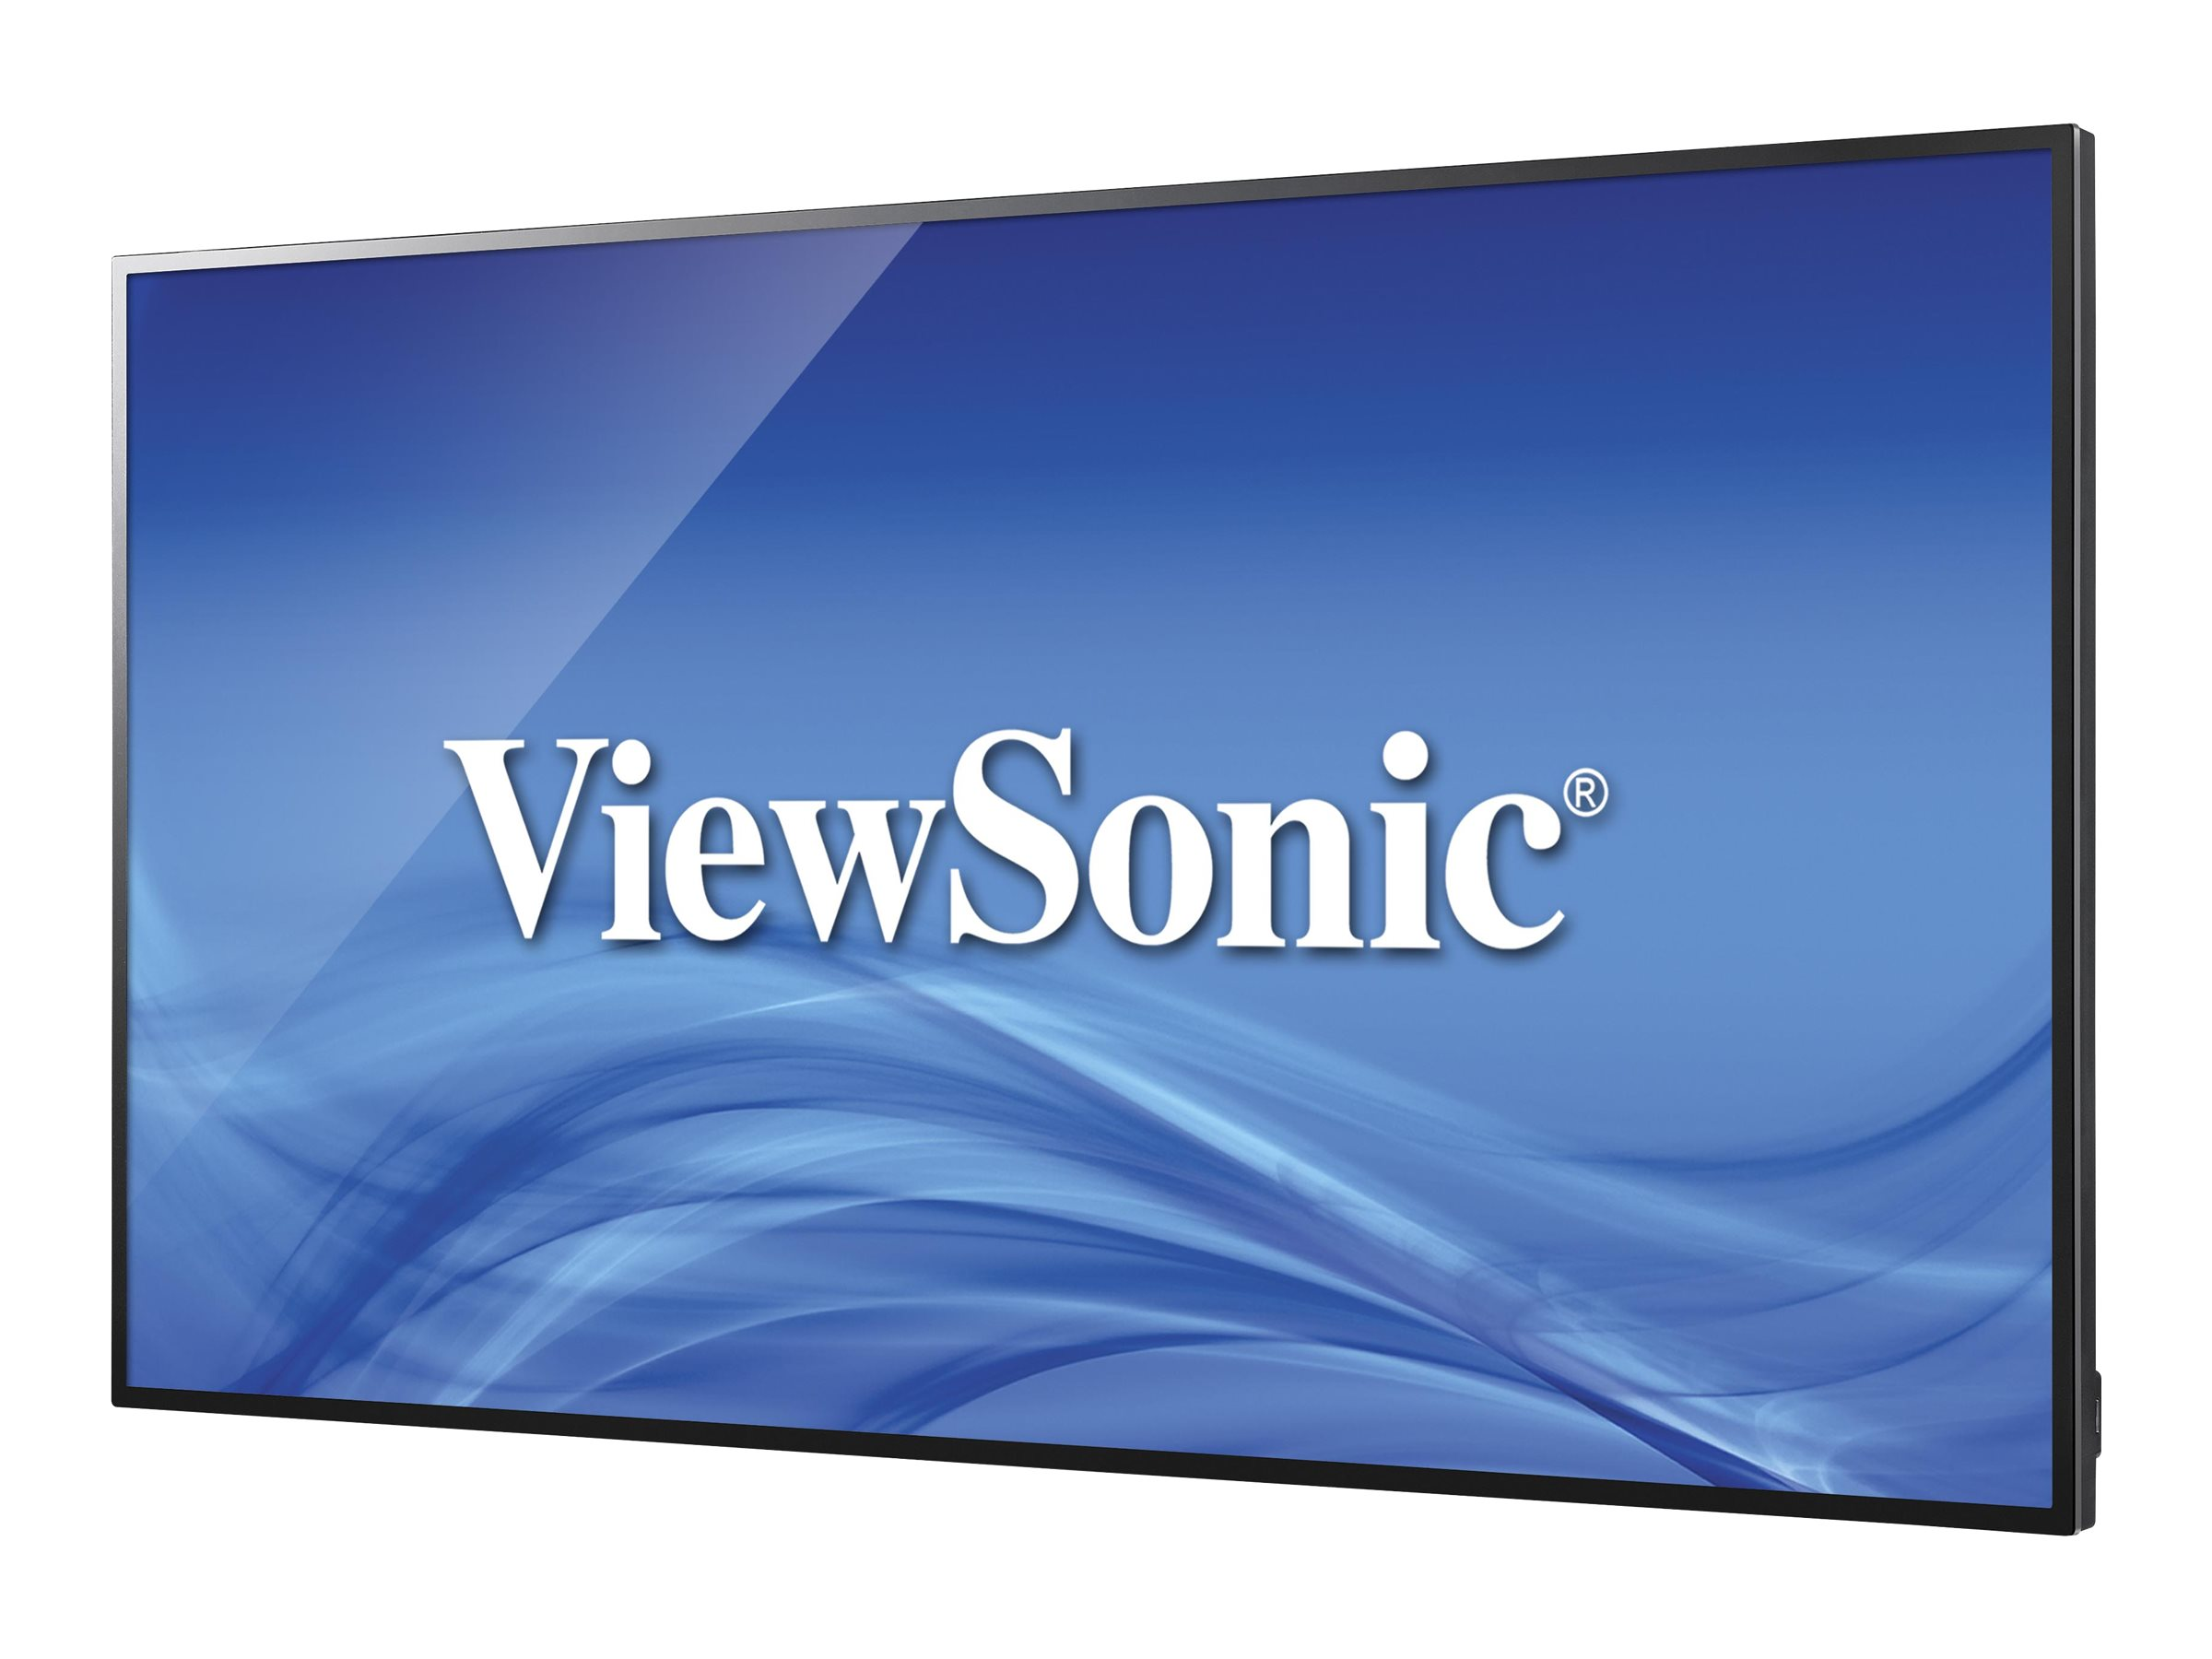 ViewSonic 32 CDE3203 Full HD LED-LCD Monitor, Black, CDE3203